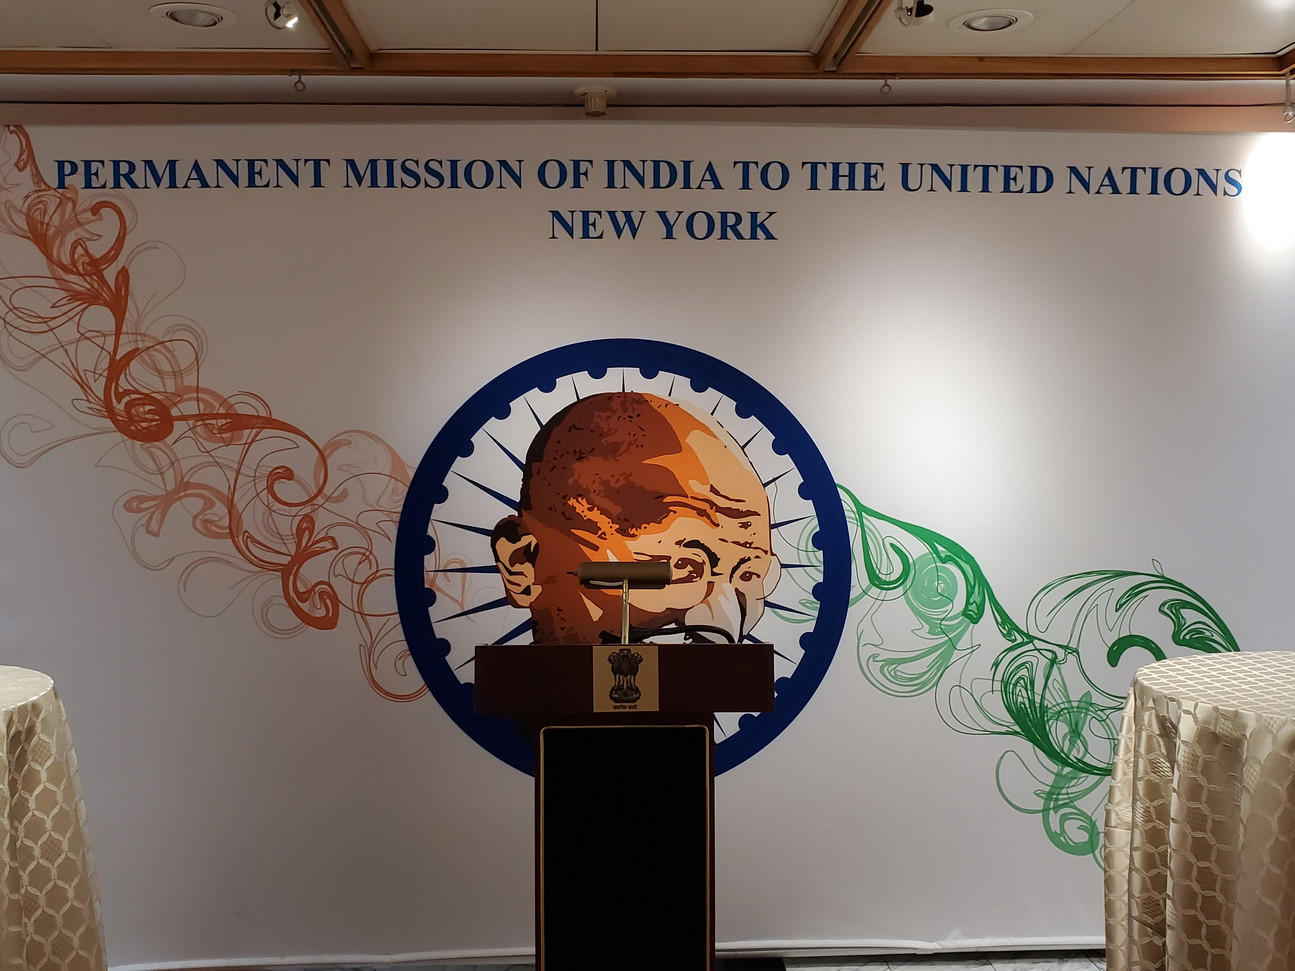 UNITED NATIONS PERMANENT MISSION TO INDIA June 2019 Manhattan, New York